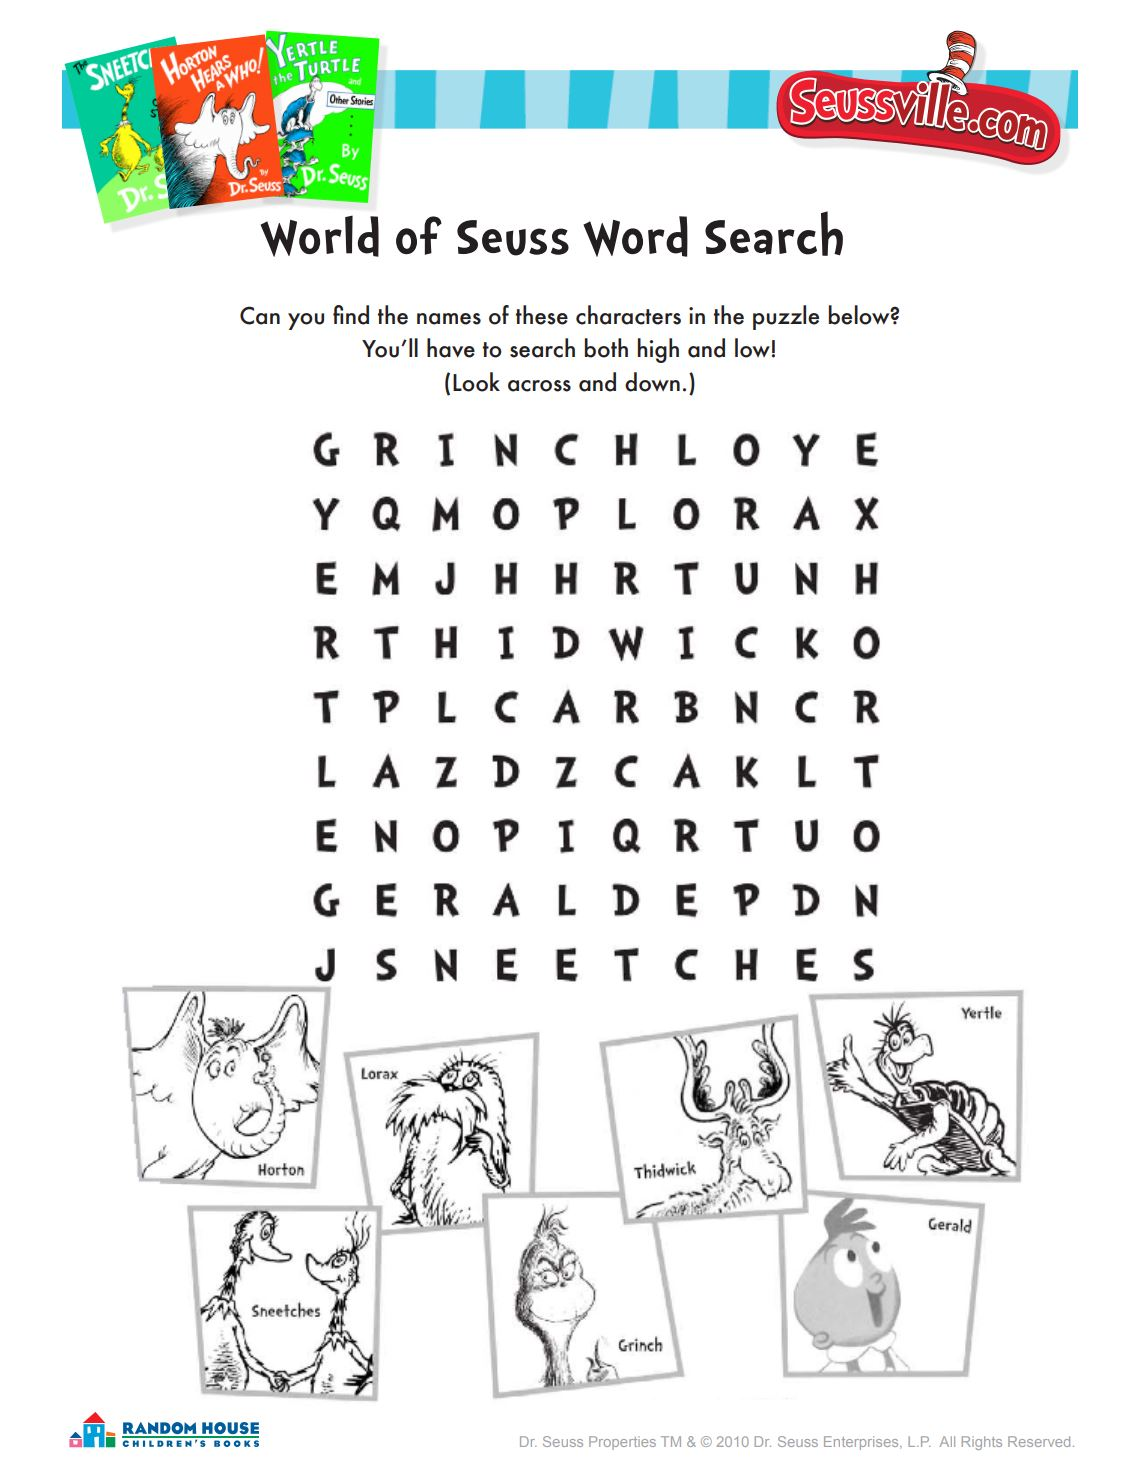 World of Seuss Word Search